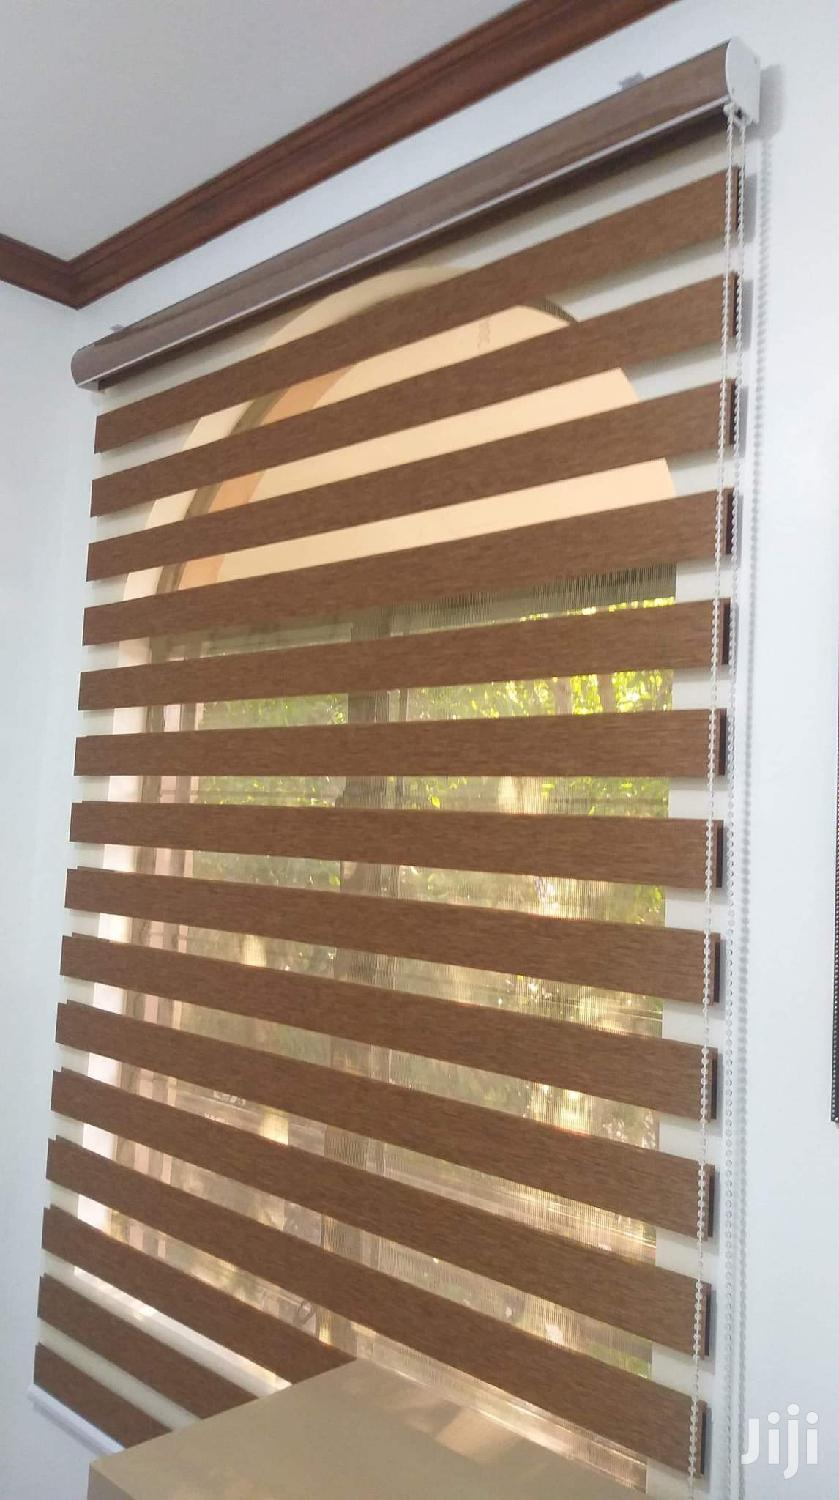 Office And Home Modern Window Curtains Blinds In Ga East Municipal Home Accessories Keli Doh Jiji Com Gh For Sale In Ga East Municipal Buy Home Accessories From Keli Doh On,Farmhouse Front Door Wreath Ideas